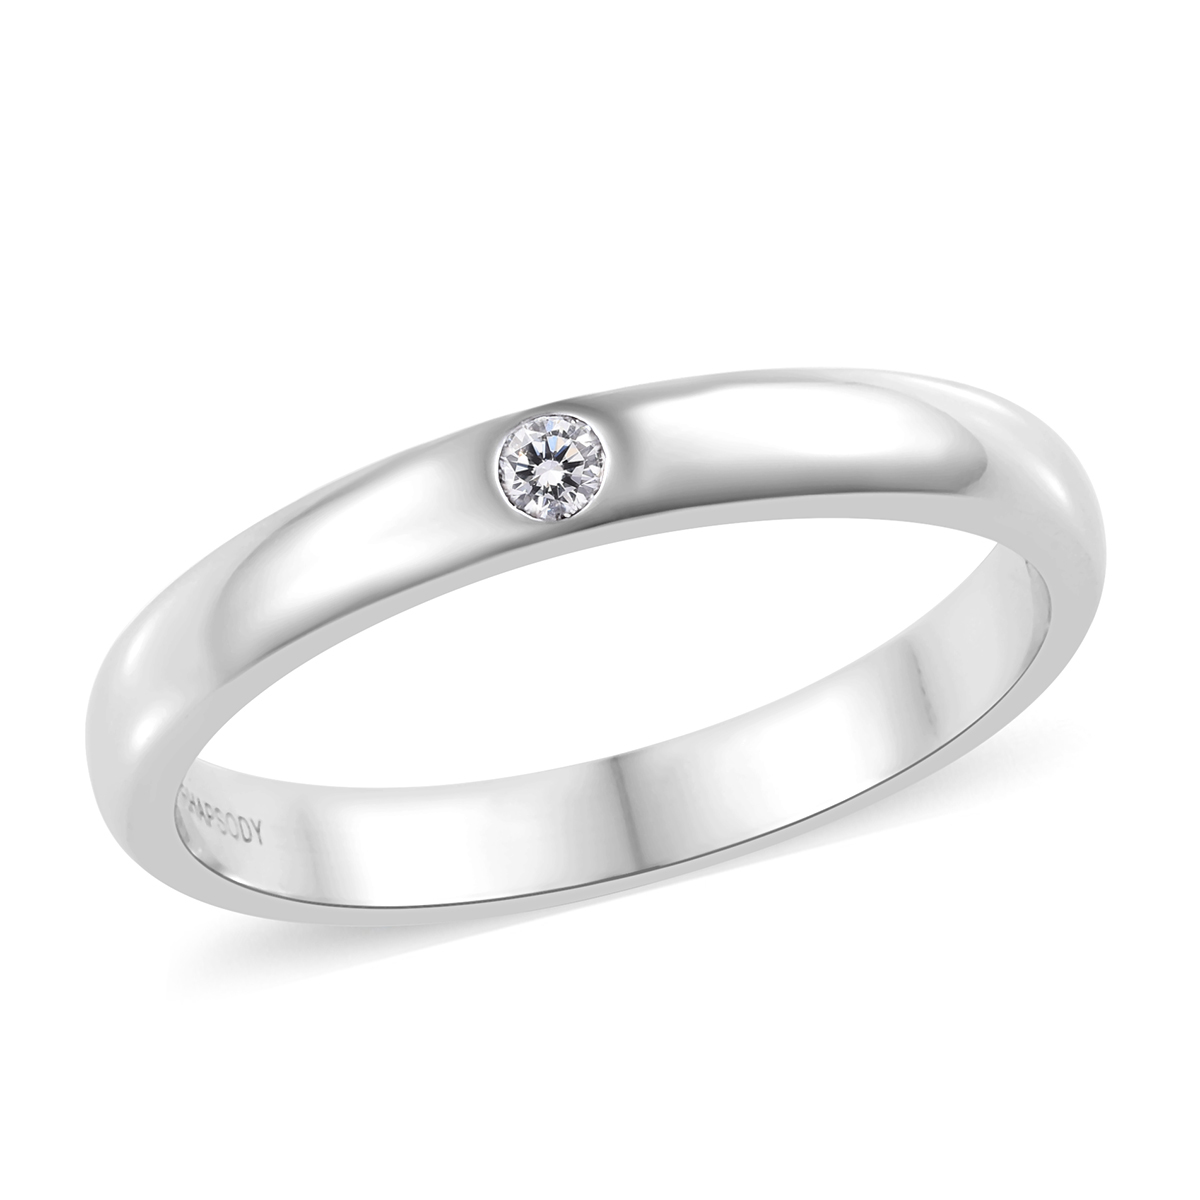 Rhapsody diamond men's ring in platinum.